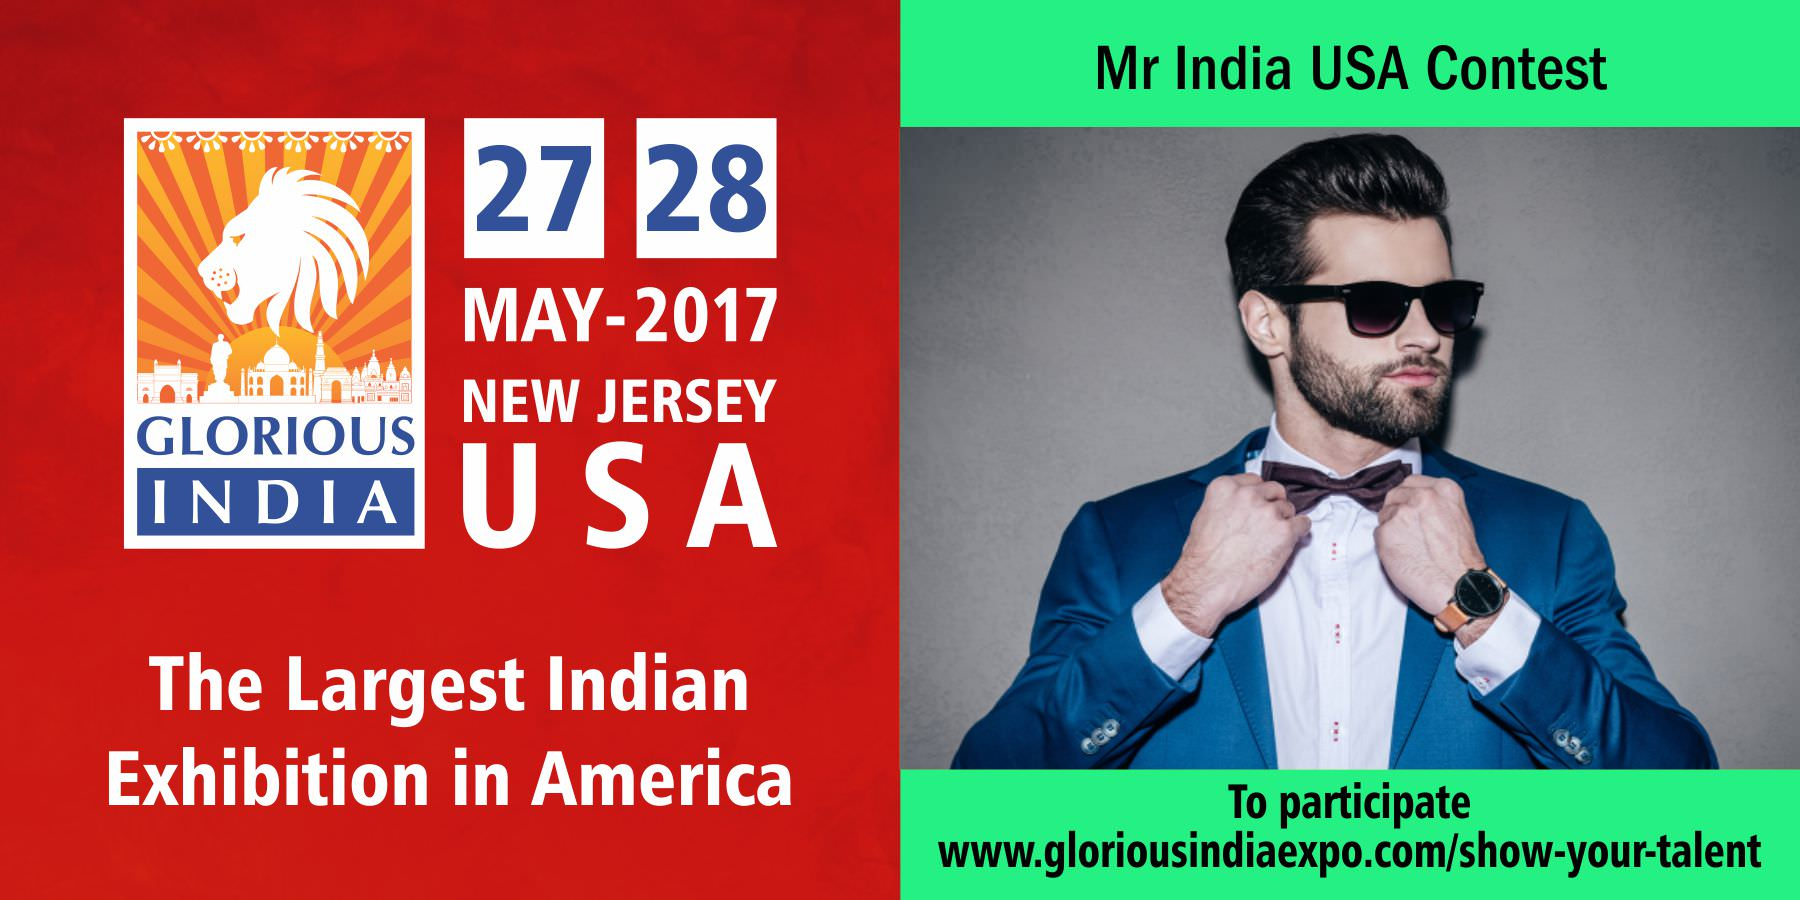 Glorious India Expo - Mr India USA Contest